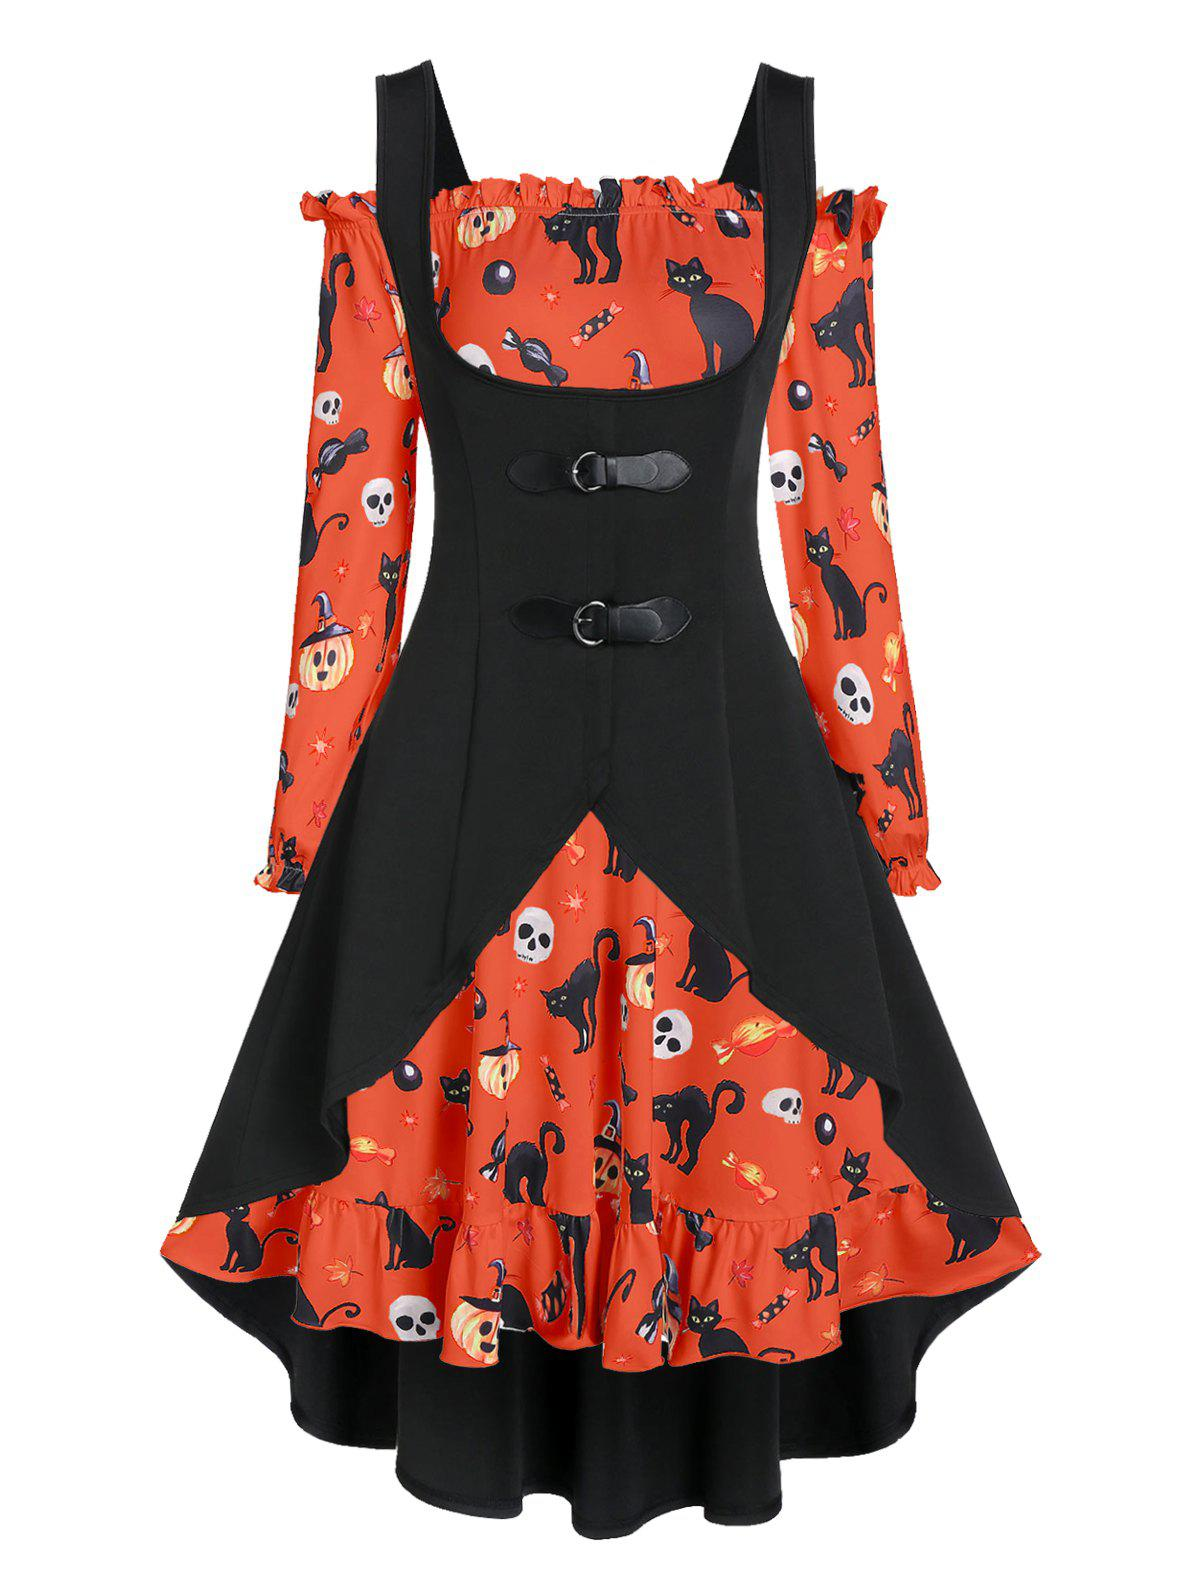 A Line Pumpkin Print Halloween Dress with High Low Top - BRIGHT ORANGE S